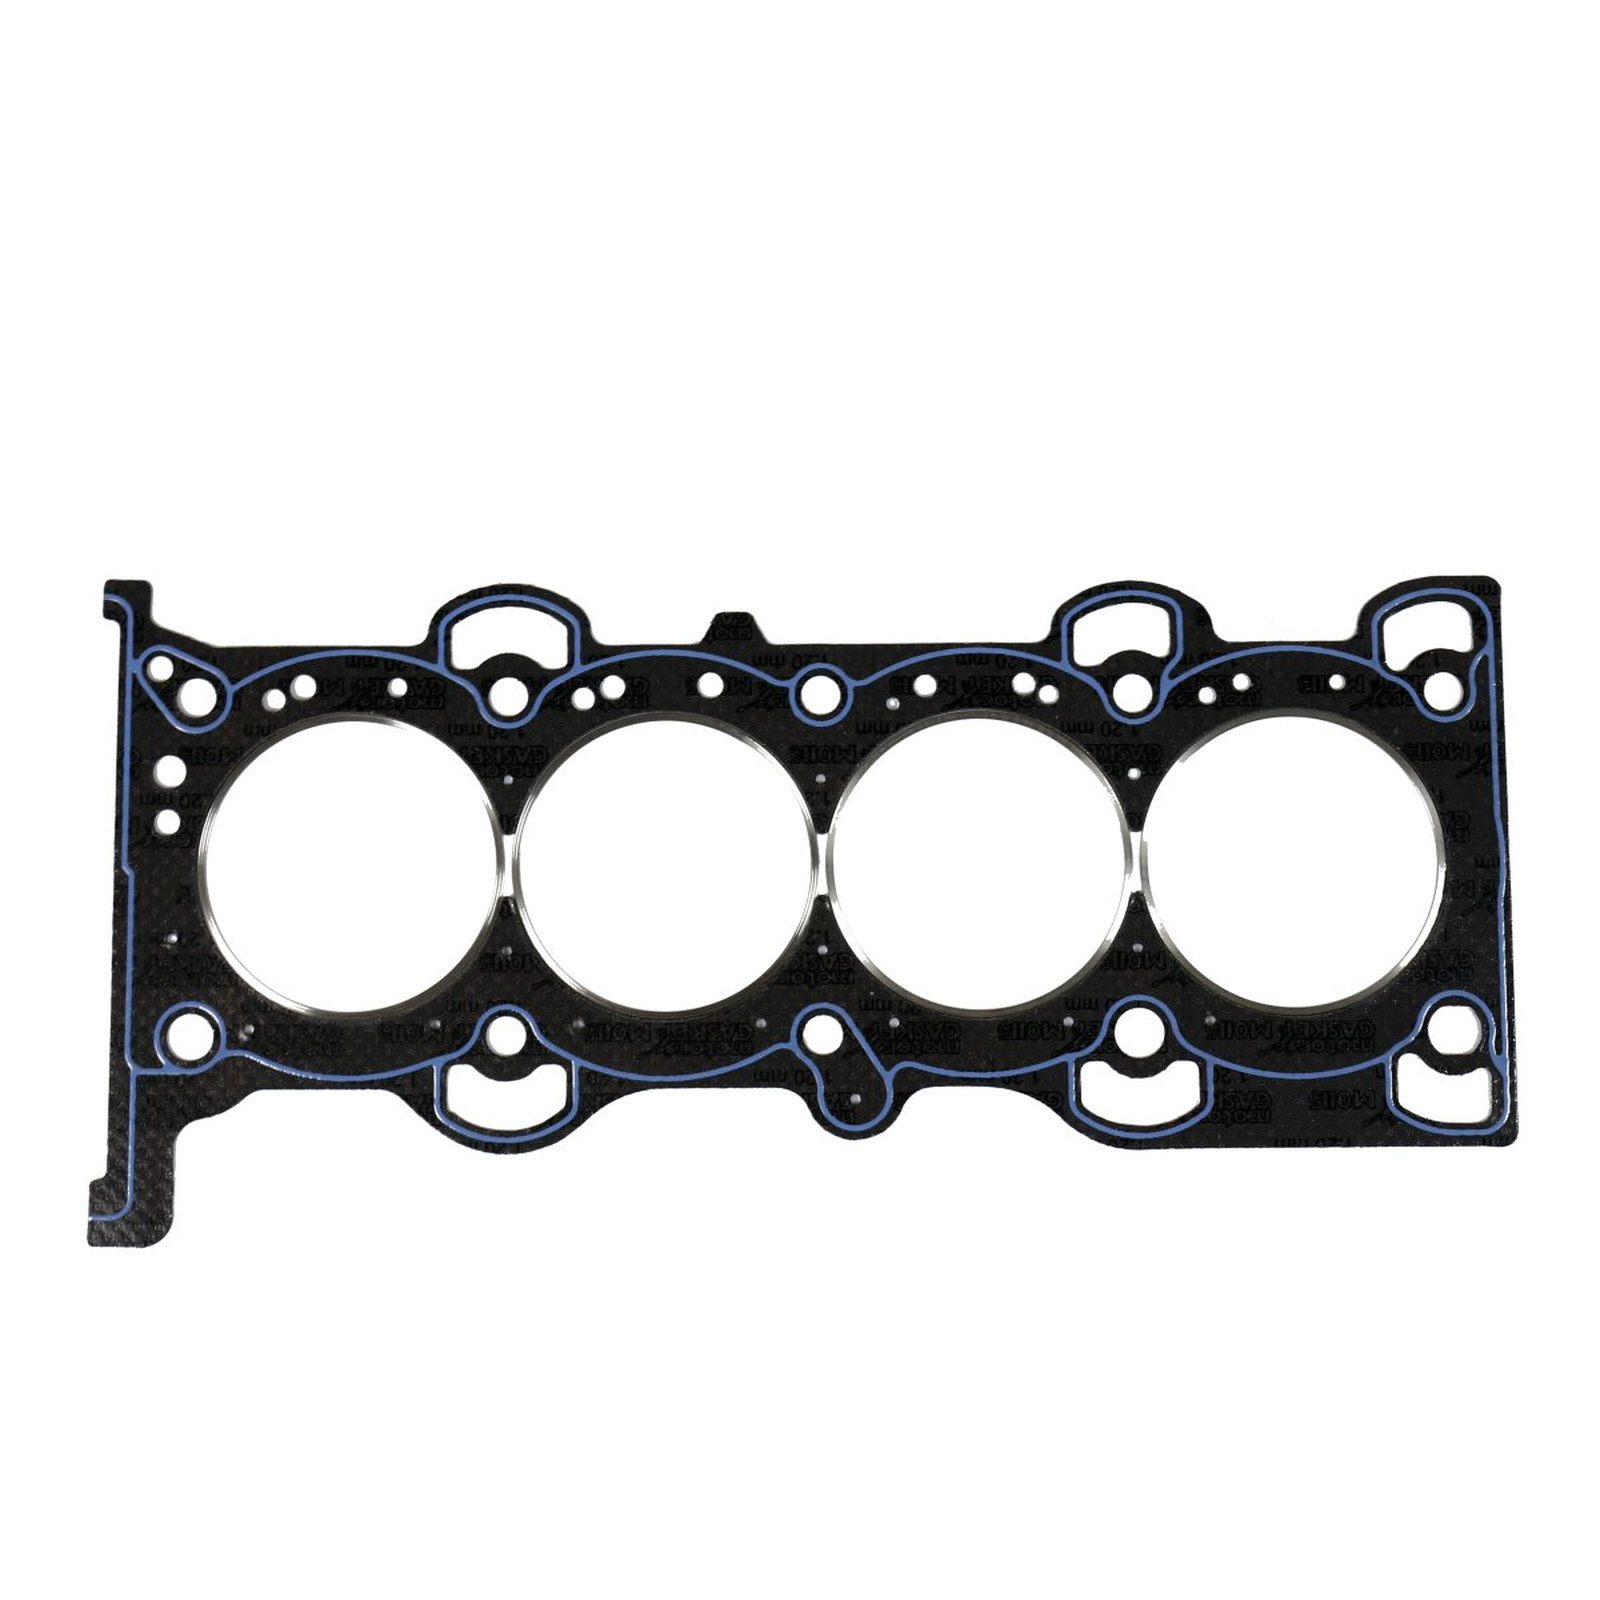 2013 Mazda Mazda2 Head Gasket: ATHENA Cylinder Head Gasket For MAZDA 2 / 3 Notchback (BK